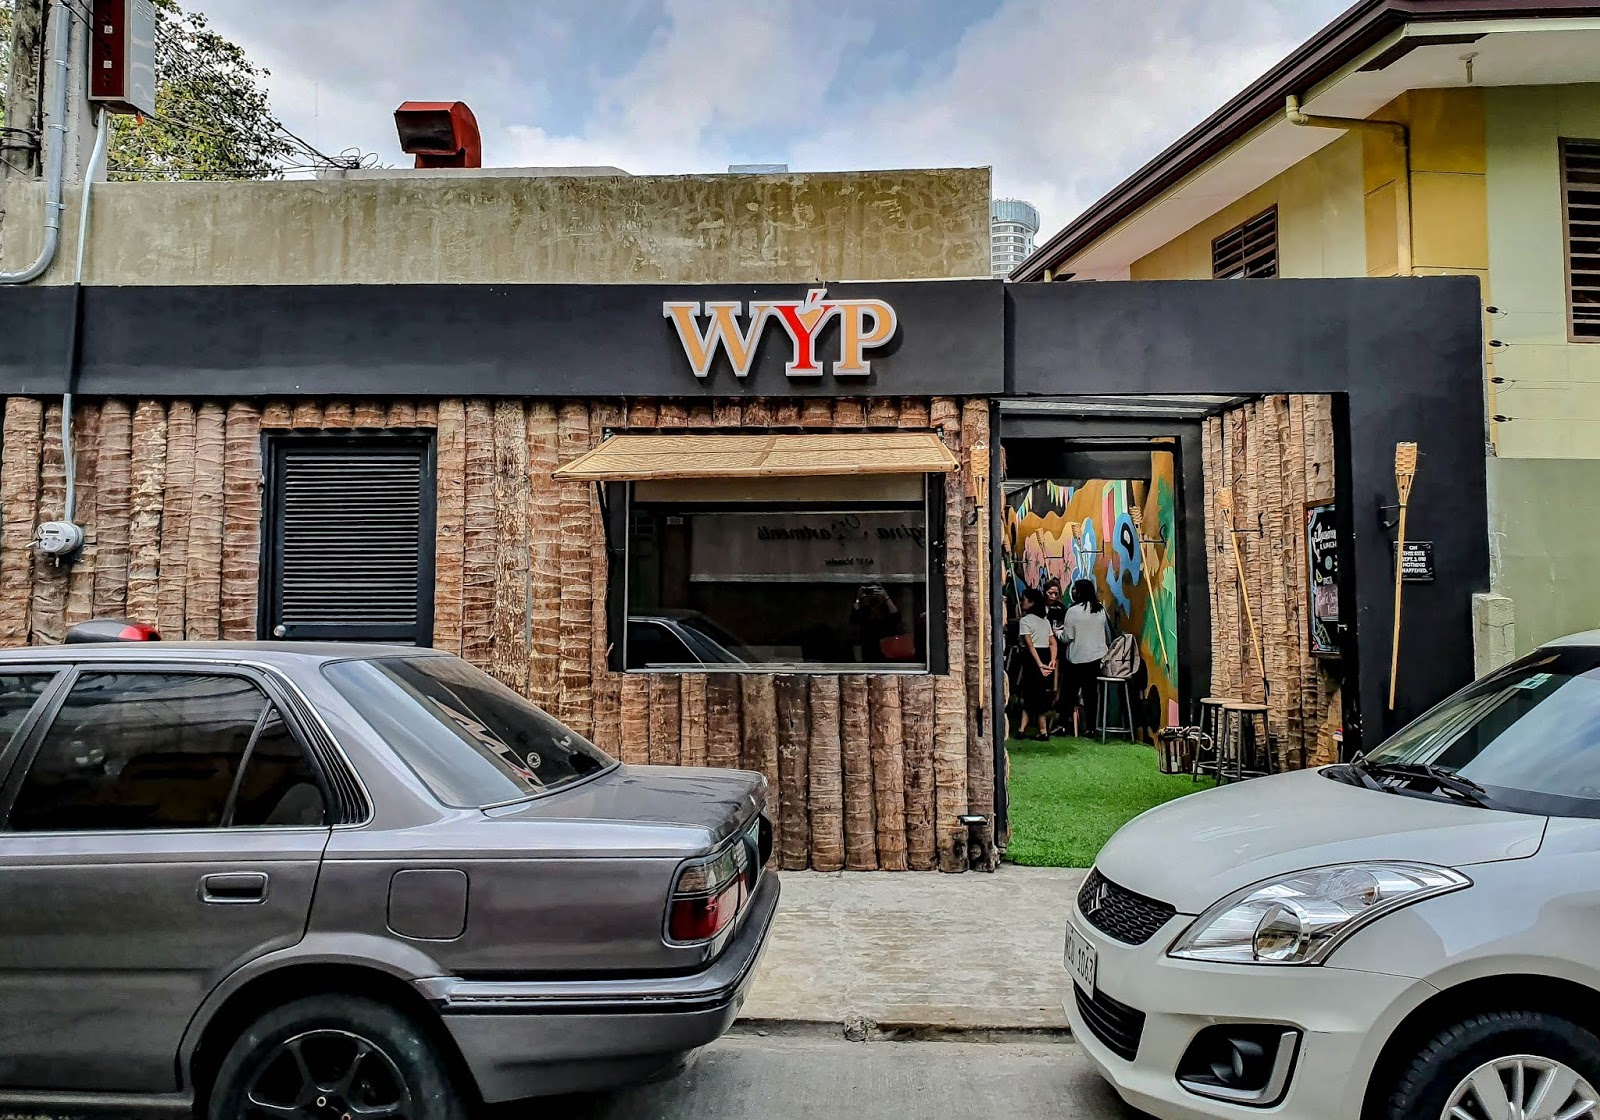 WYB Bar Poblacion, bar hopping, bar in Poblacion, Best bar in Poblacion, thedailyposh, where to go in Poblacion, what is your poison, bar and restaurant in Poblacion,